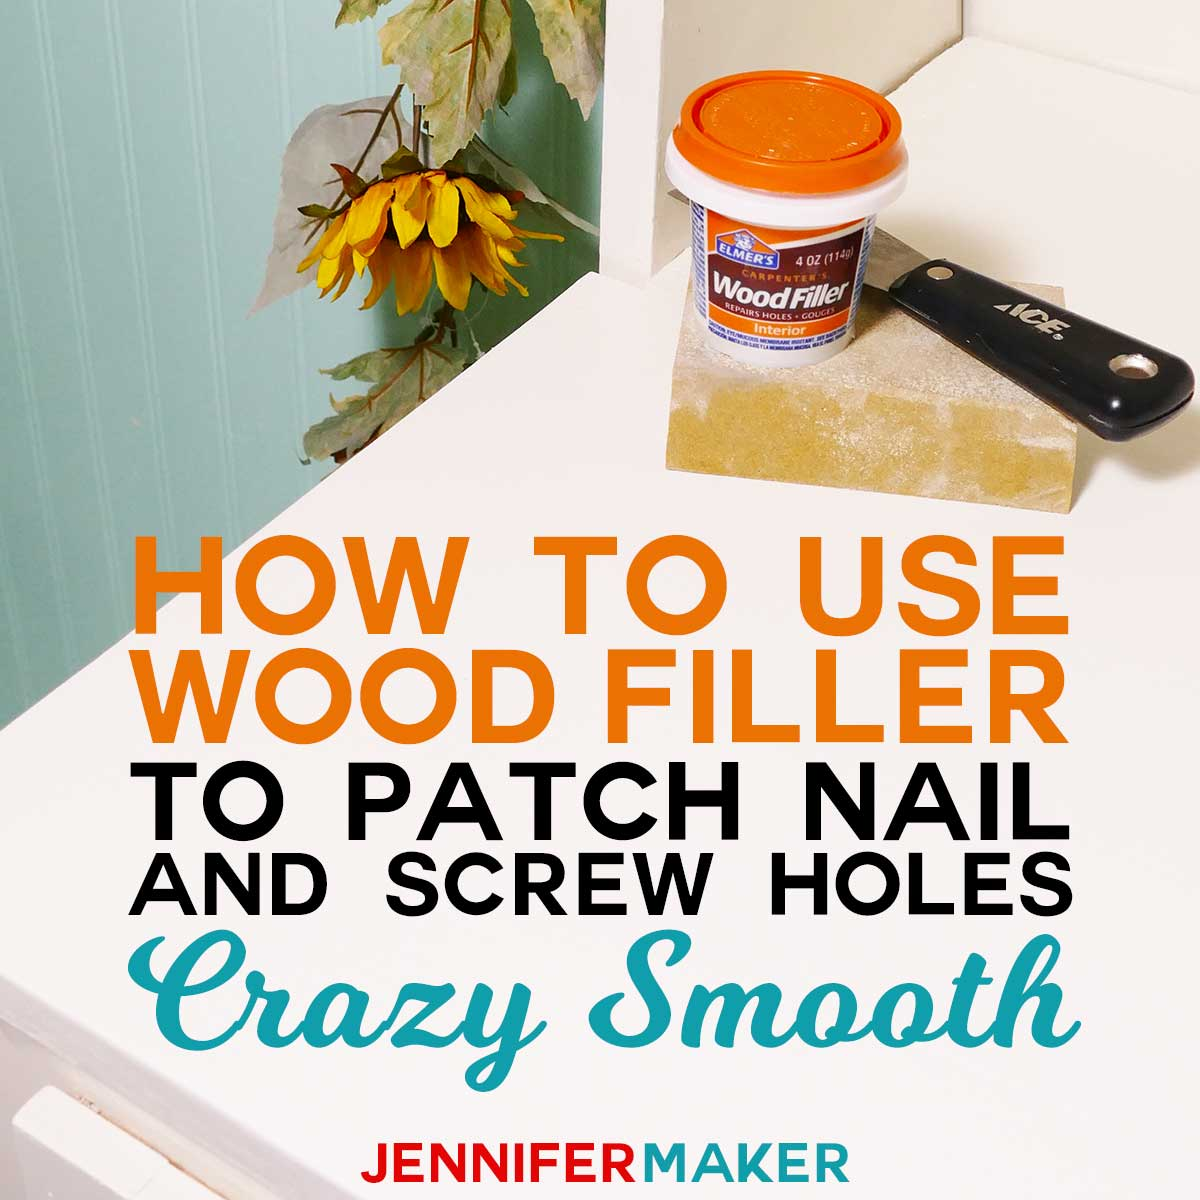 How to Use Wood Filler to Patch Nail and Screw Holes Crazy Smooth #woodworking #diy #homedecor